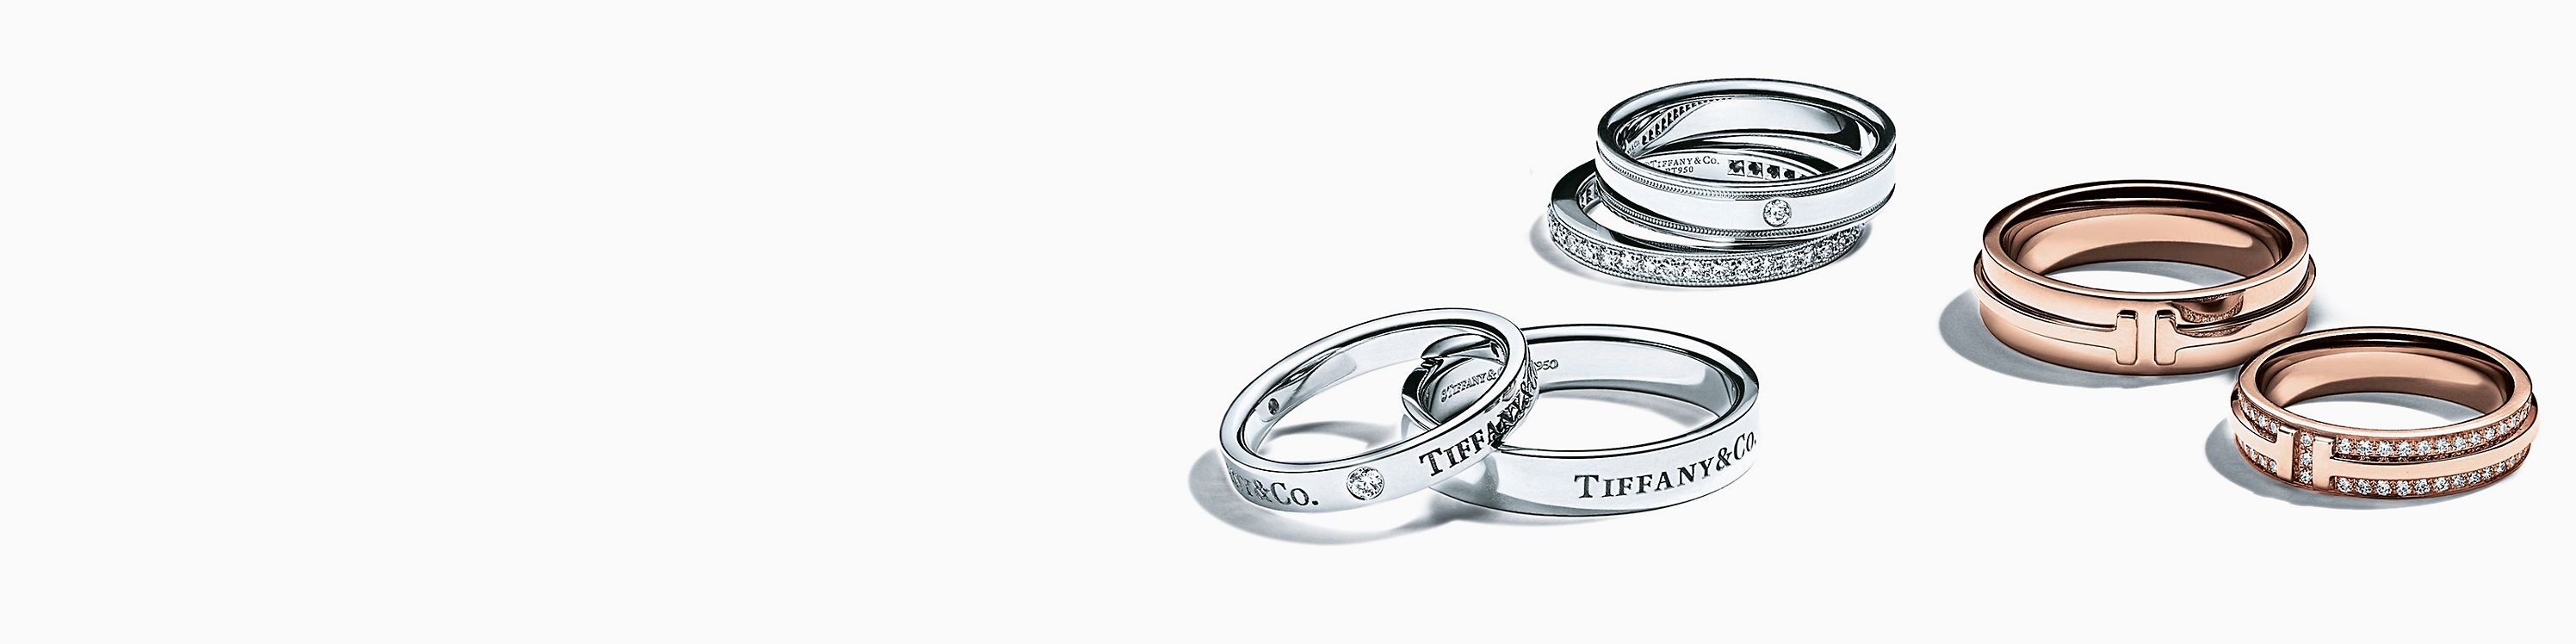 Scopri e acquista le fedi Tiffany & Co.